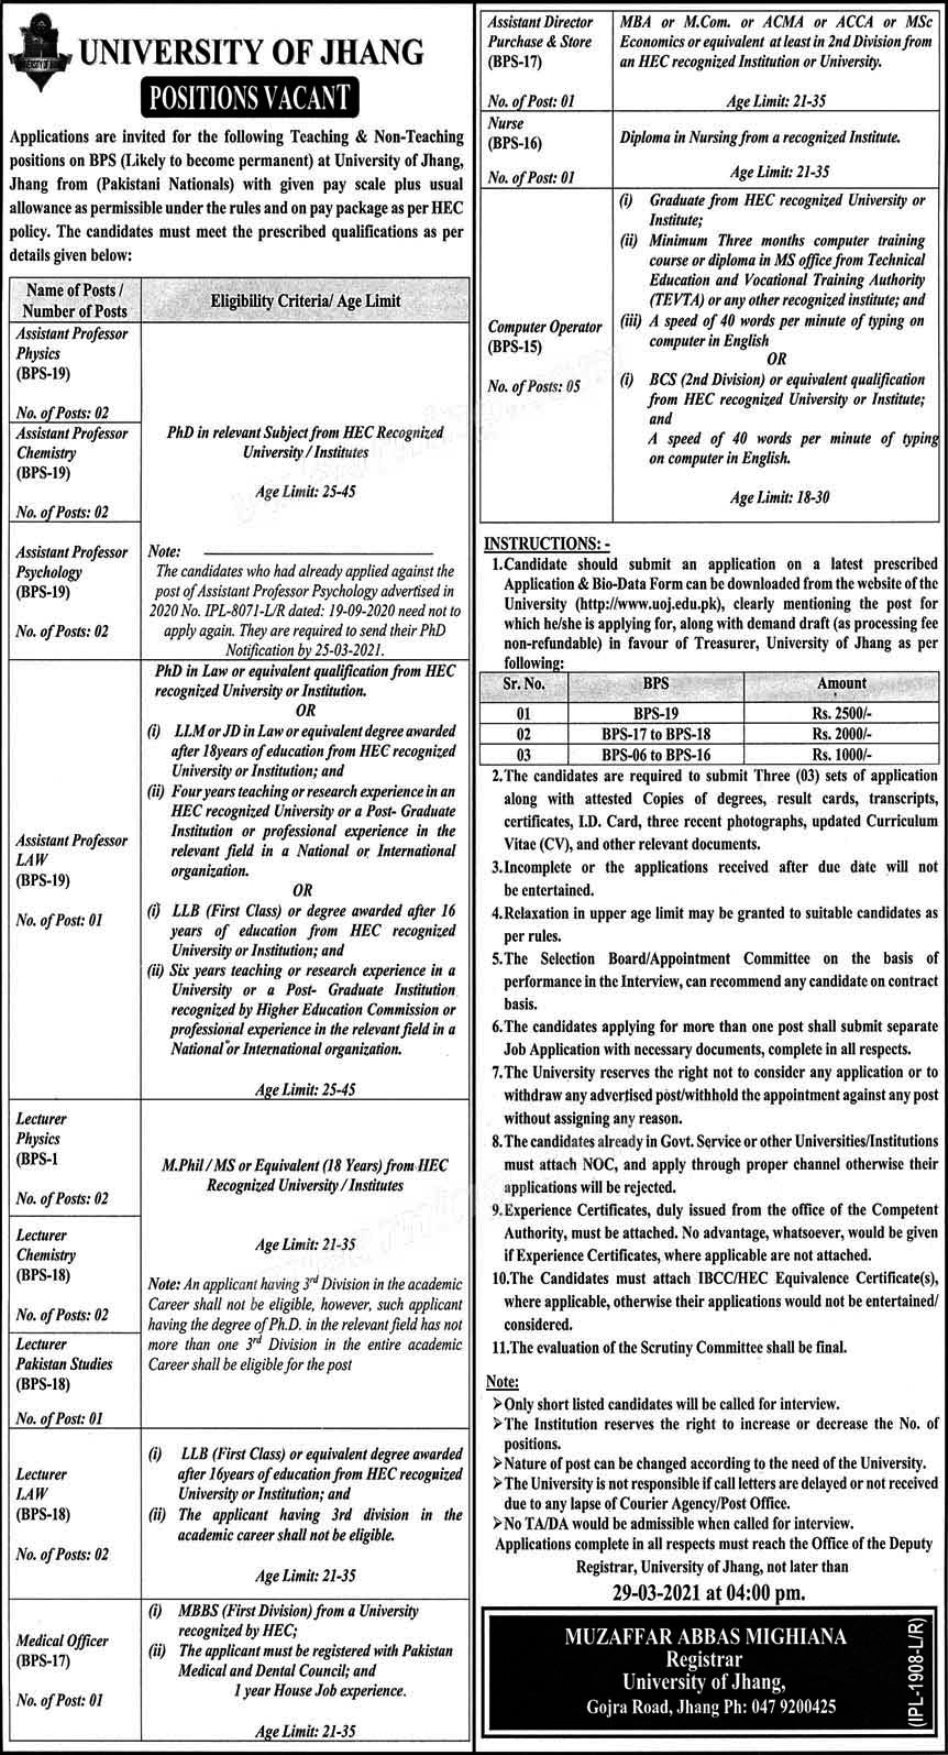 University of Jhang Lecturers, Assistant Professors, Assistant Director Computer Opera